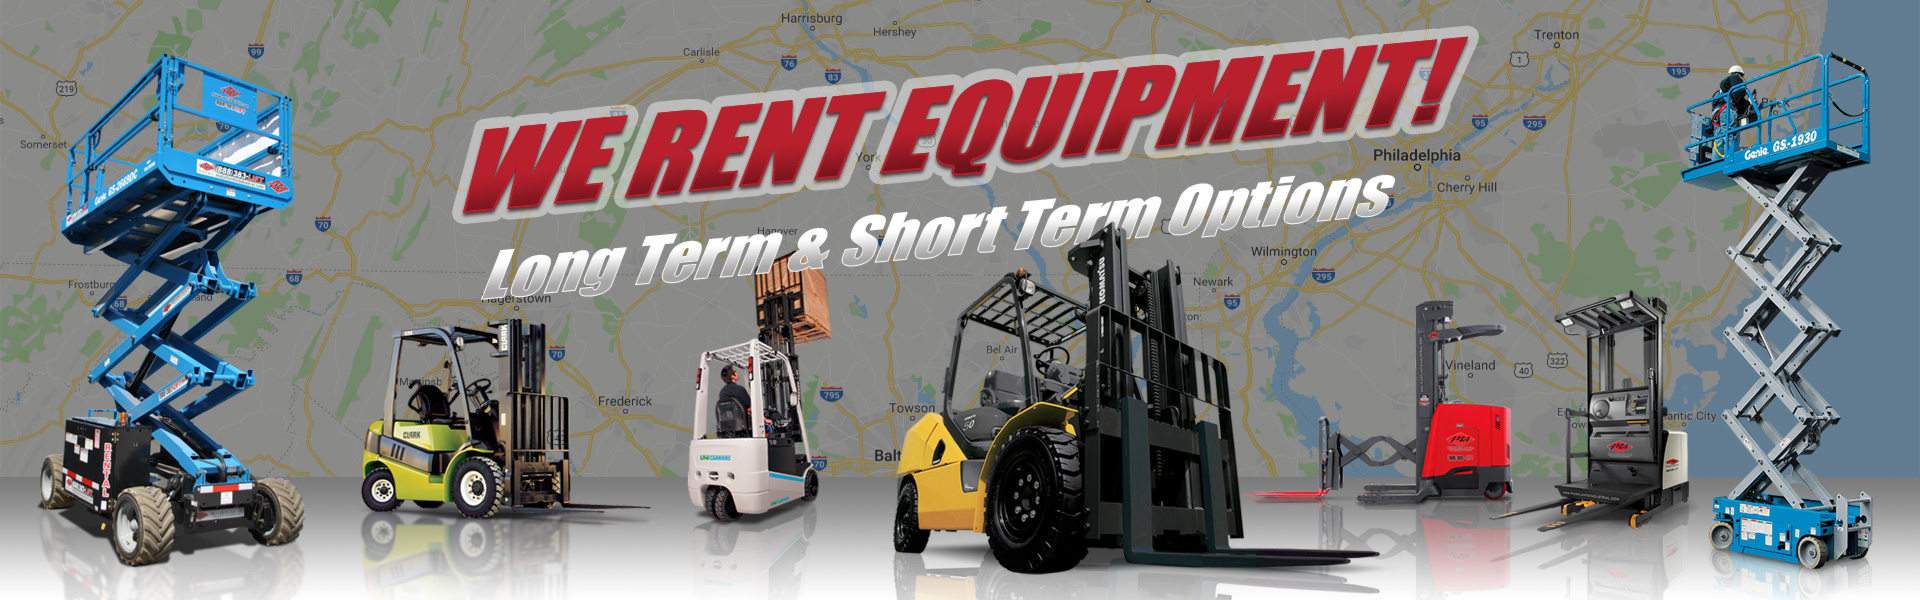 We Rent Equipment - Forklifts and Other Material Handling Equipment - Long Term and Short Term Equipment Rental Options Available